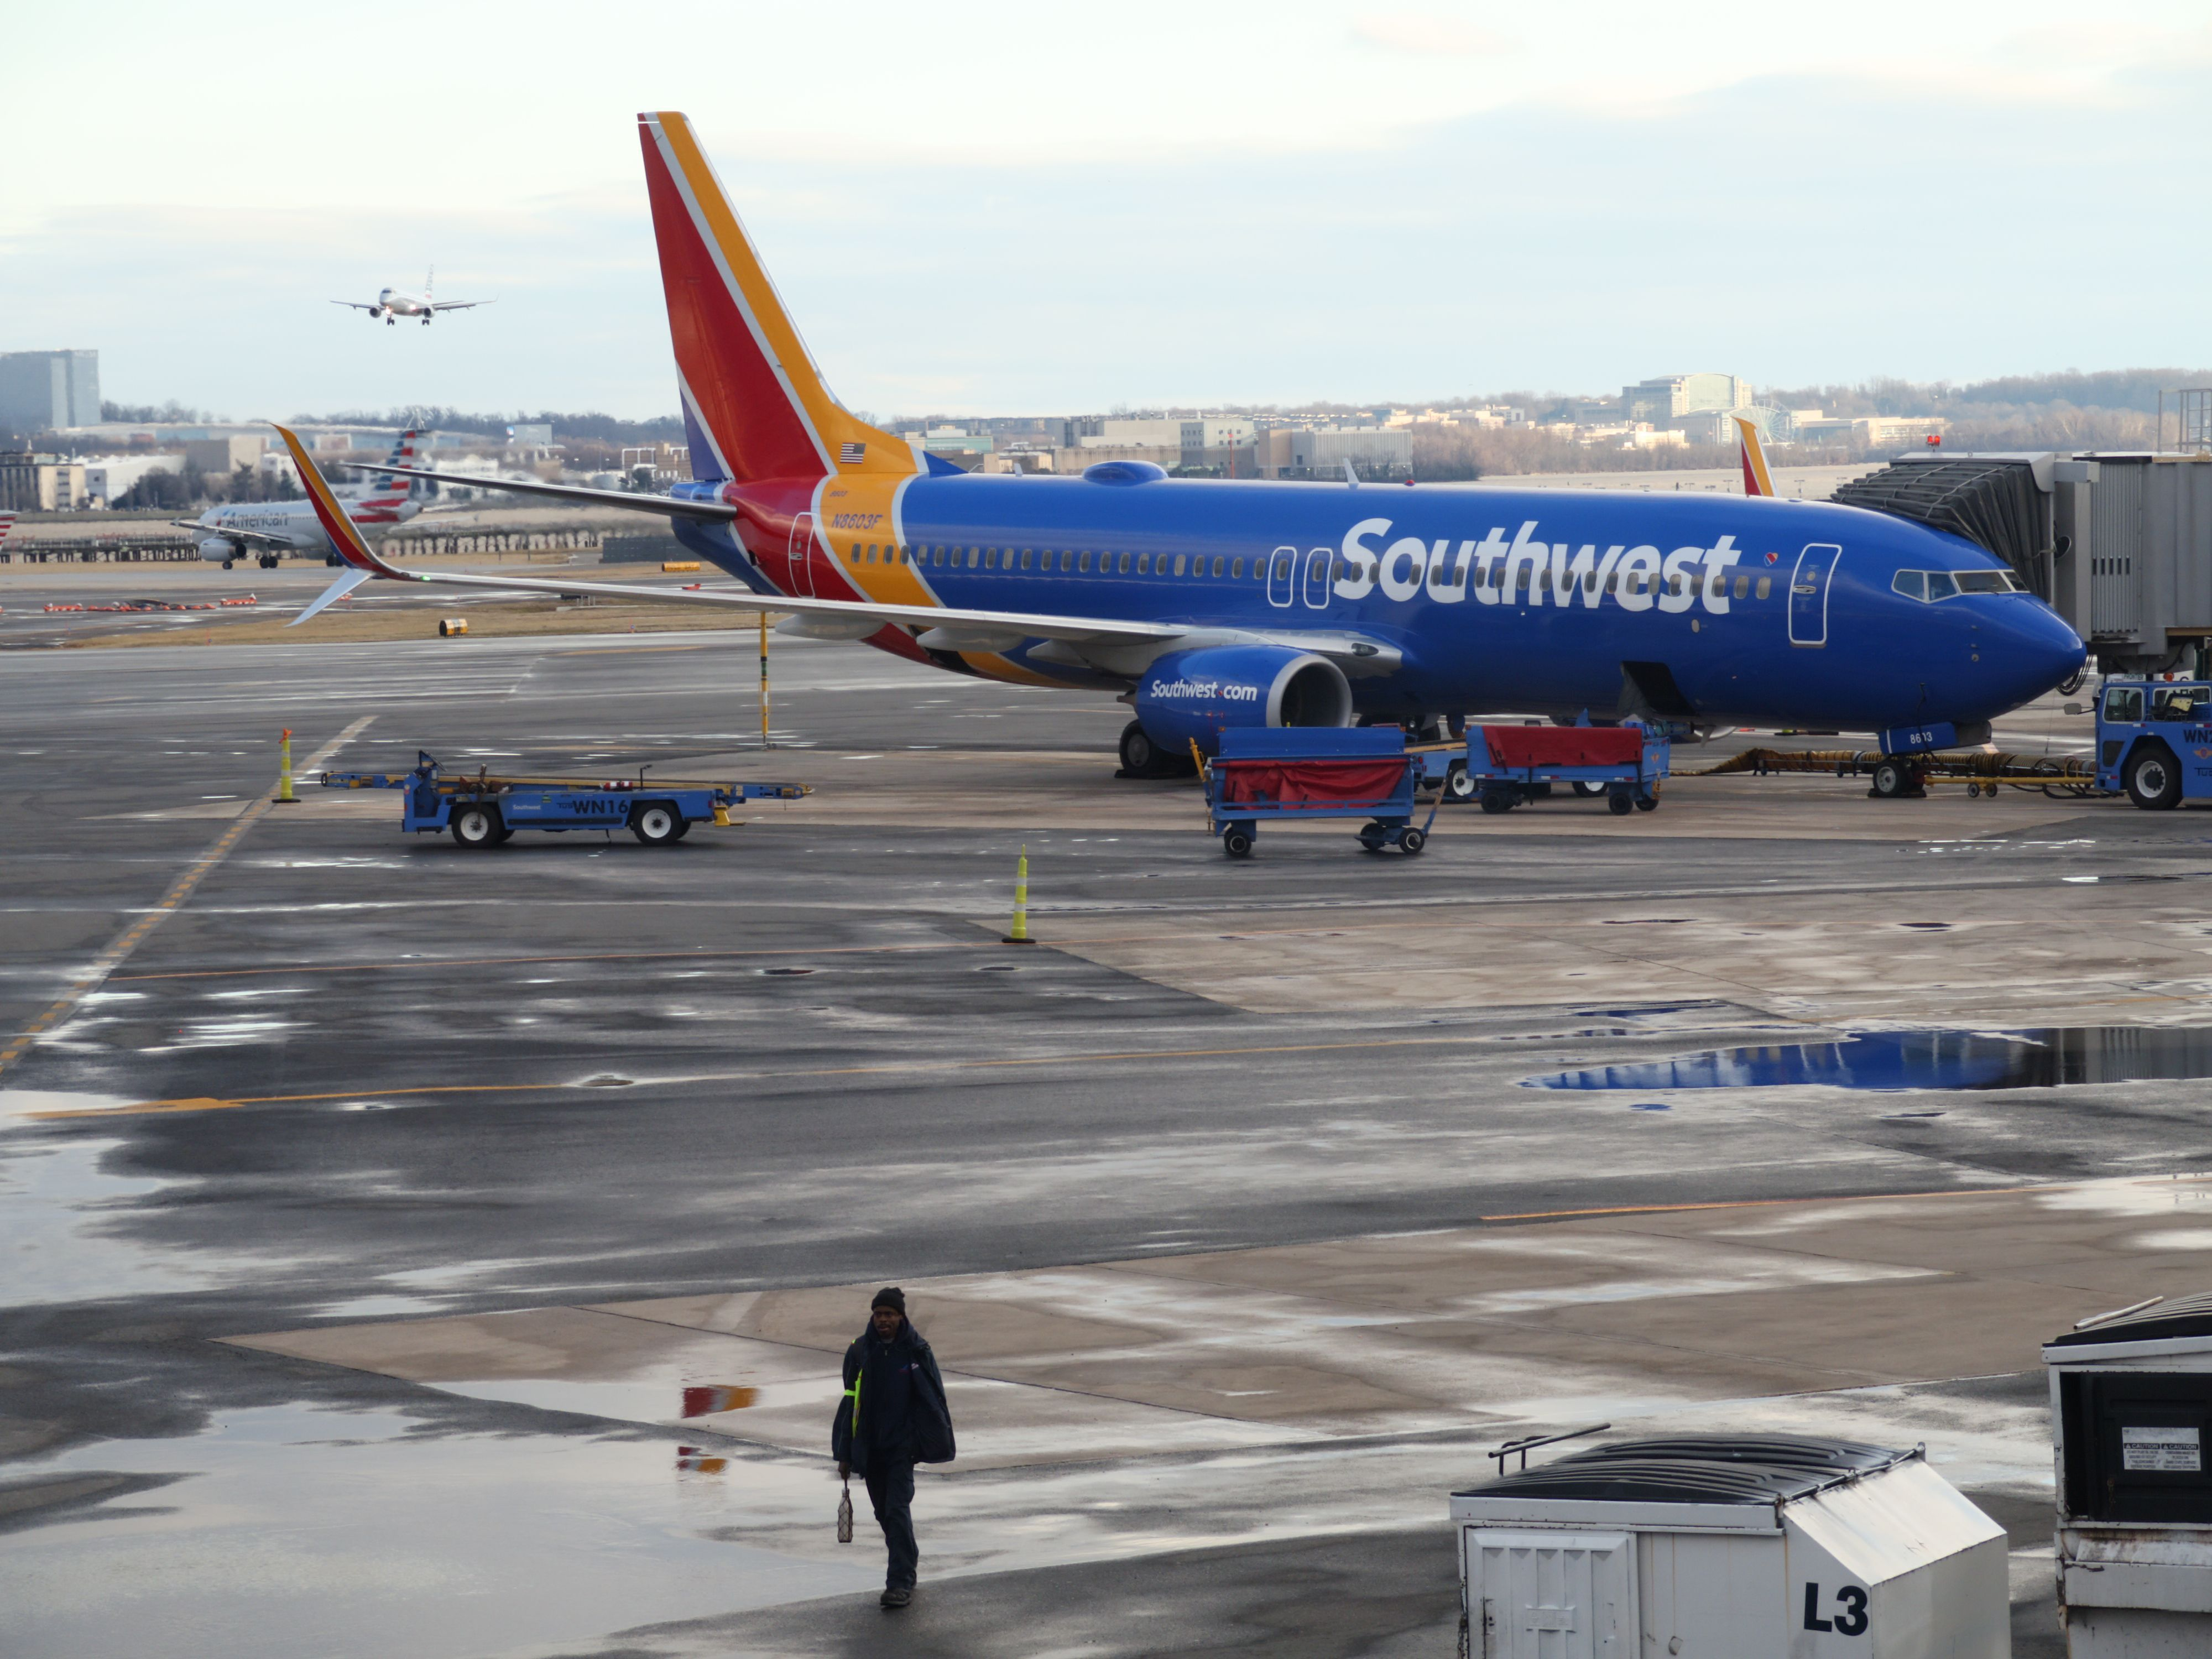 FAA: Southwest Airlines Miscalculated Baggage Weights to an Alarming Degree